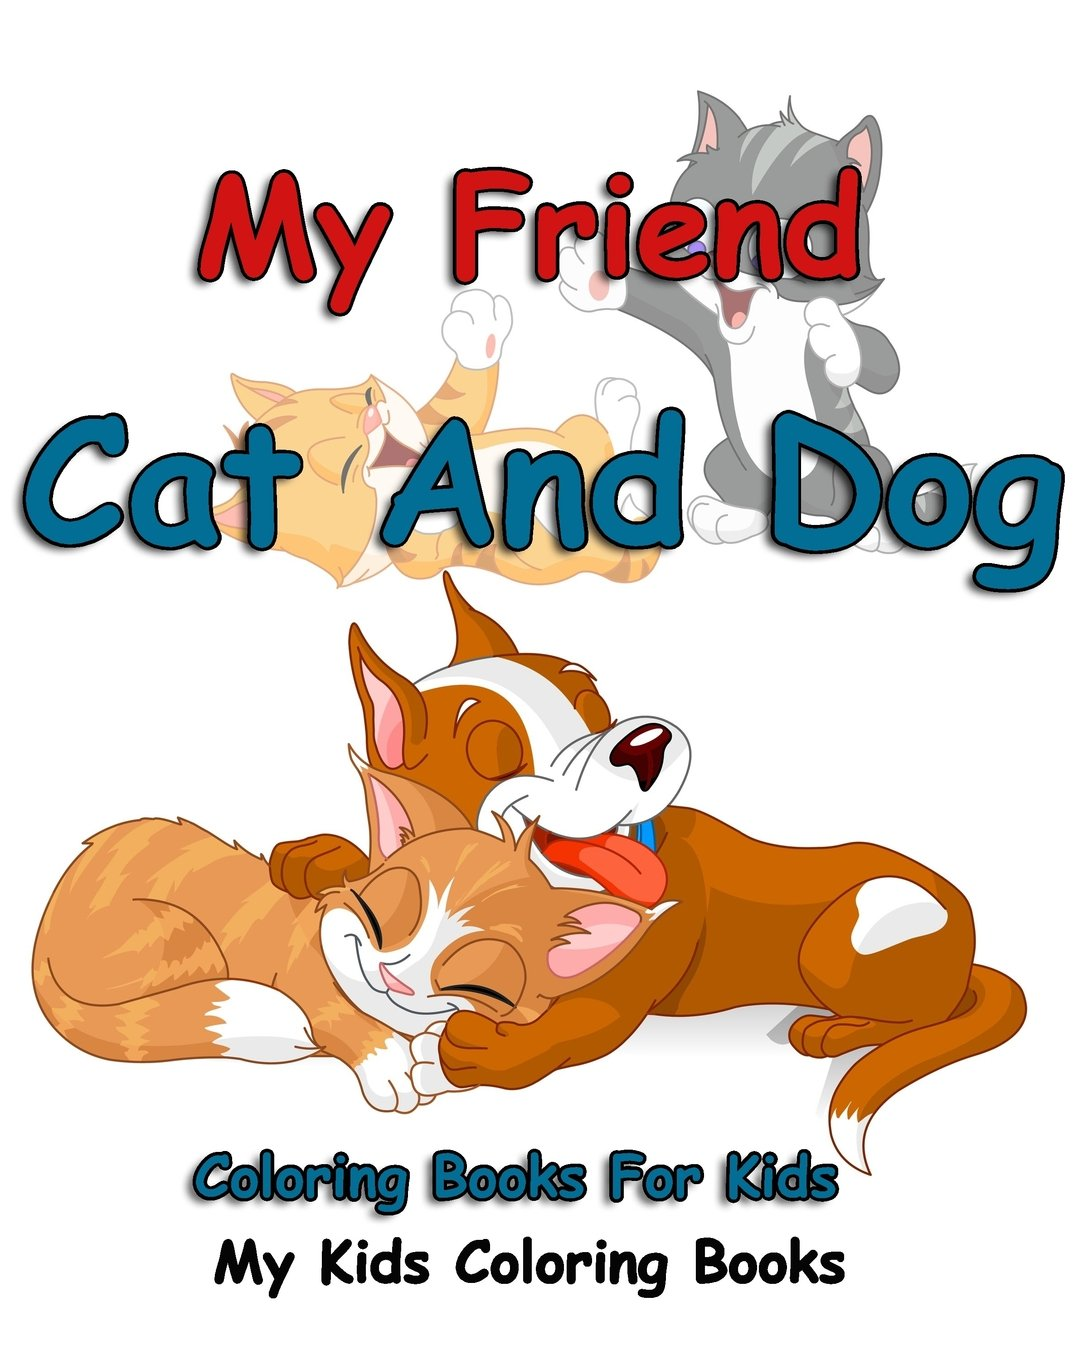 My Friend : Cat And Dog Coloring Books For Kids: Colorful Cats : Stress Relieving Cat Designs : My Kids Coloring Books (Volume 1) ebook